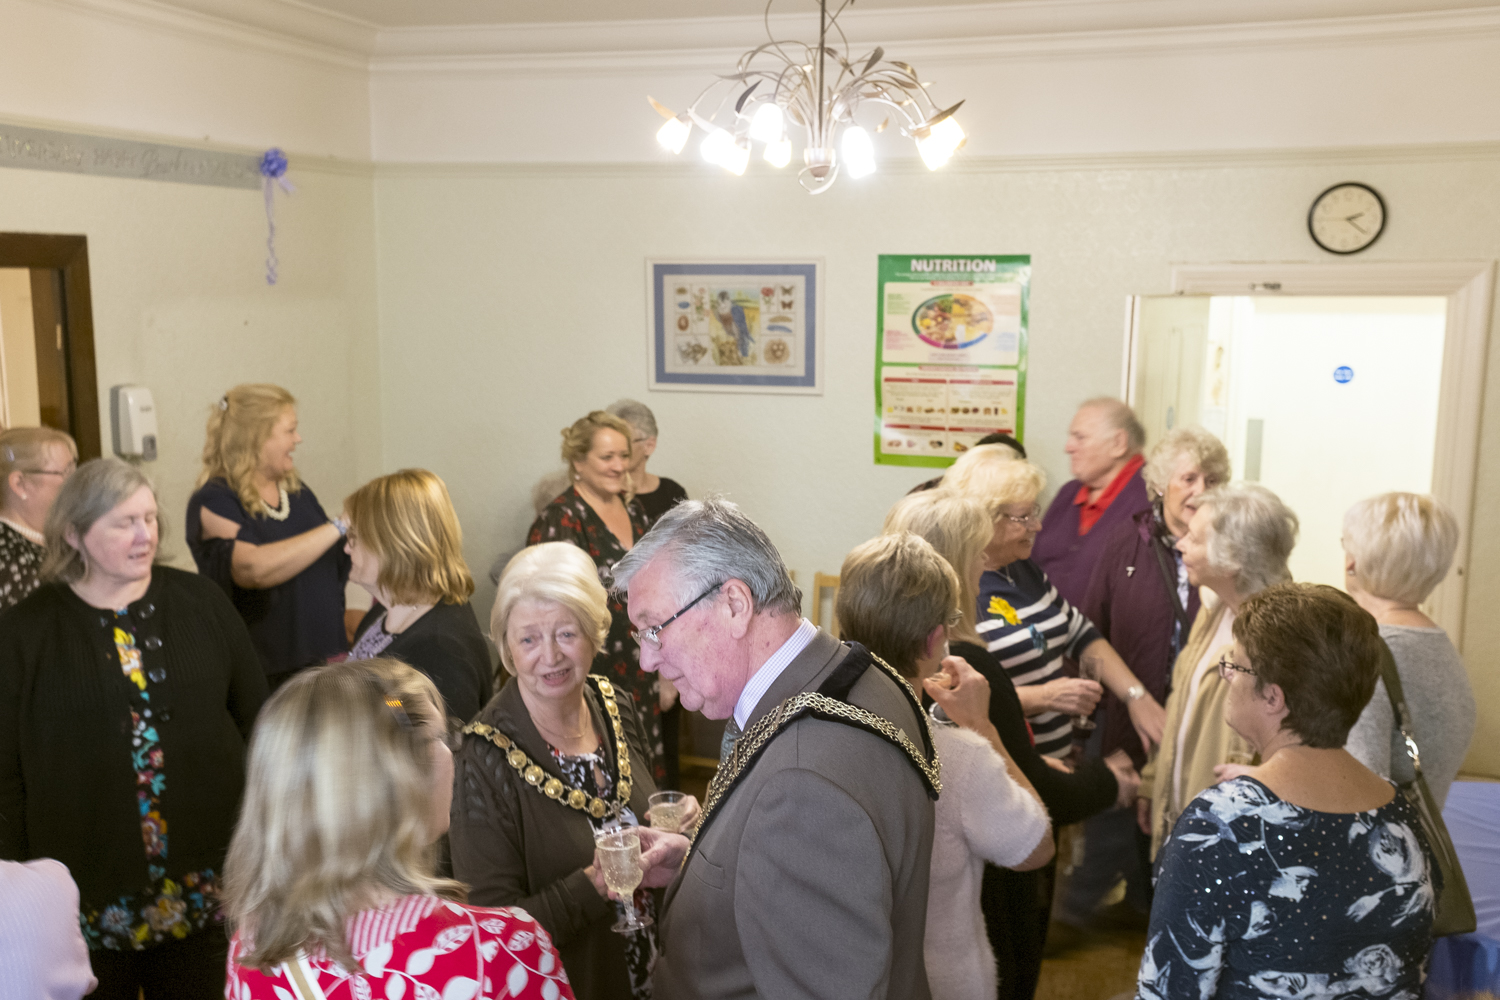 Harrowby-Lodge-Nursing-Home-30th-Anniversary-11.jpg